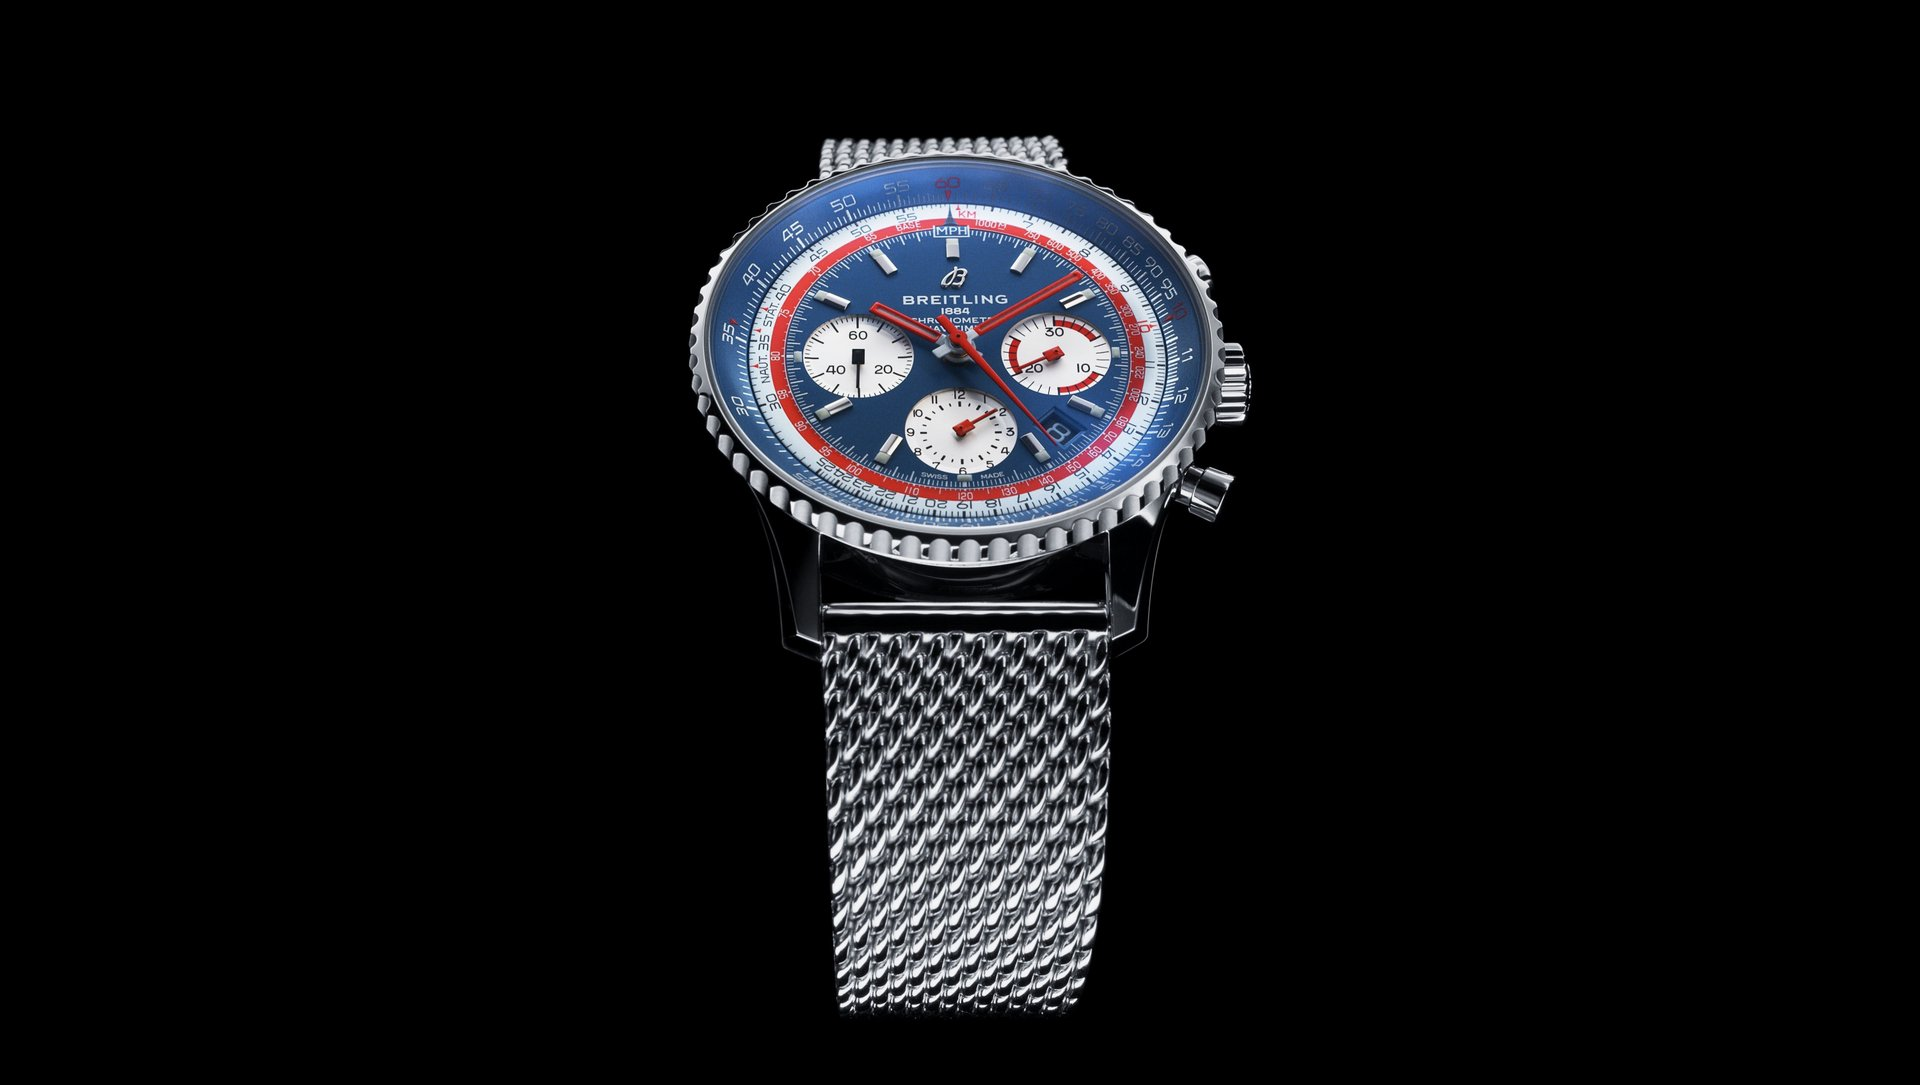 https://static.breitling.cn/media/wysiwyg/news/19-1-14/1L_1.jpg